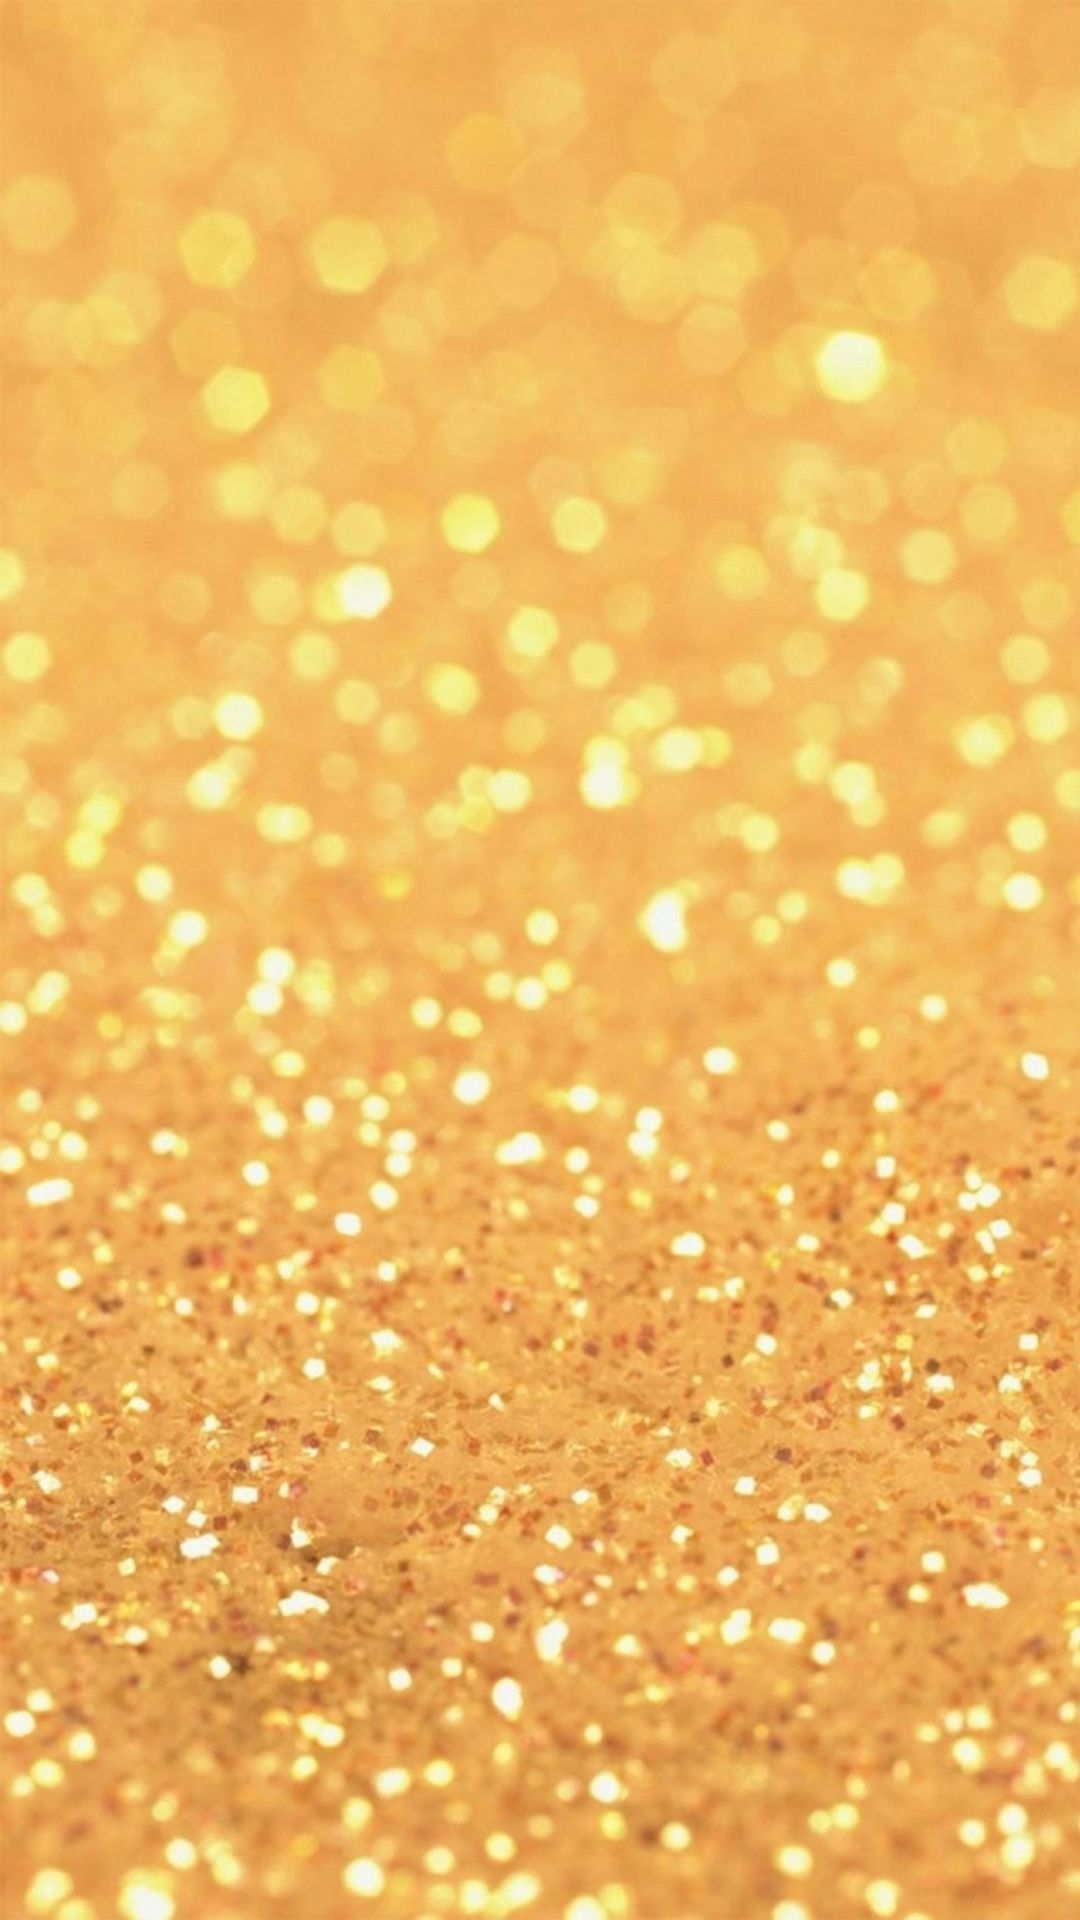 Abstract Golden Blink Shiny Color Background Iphone 6 Plus